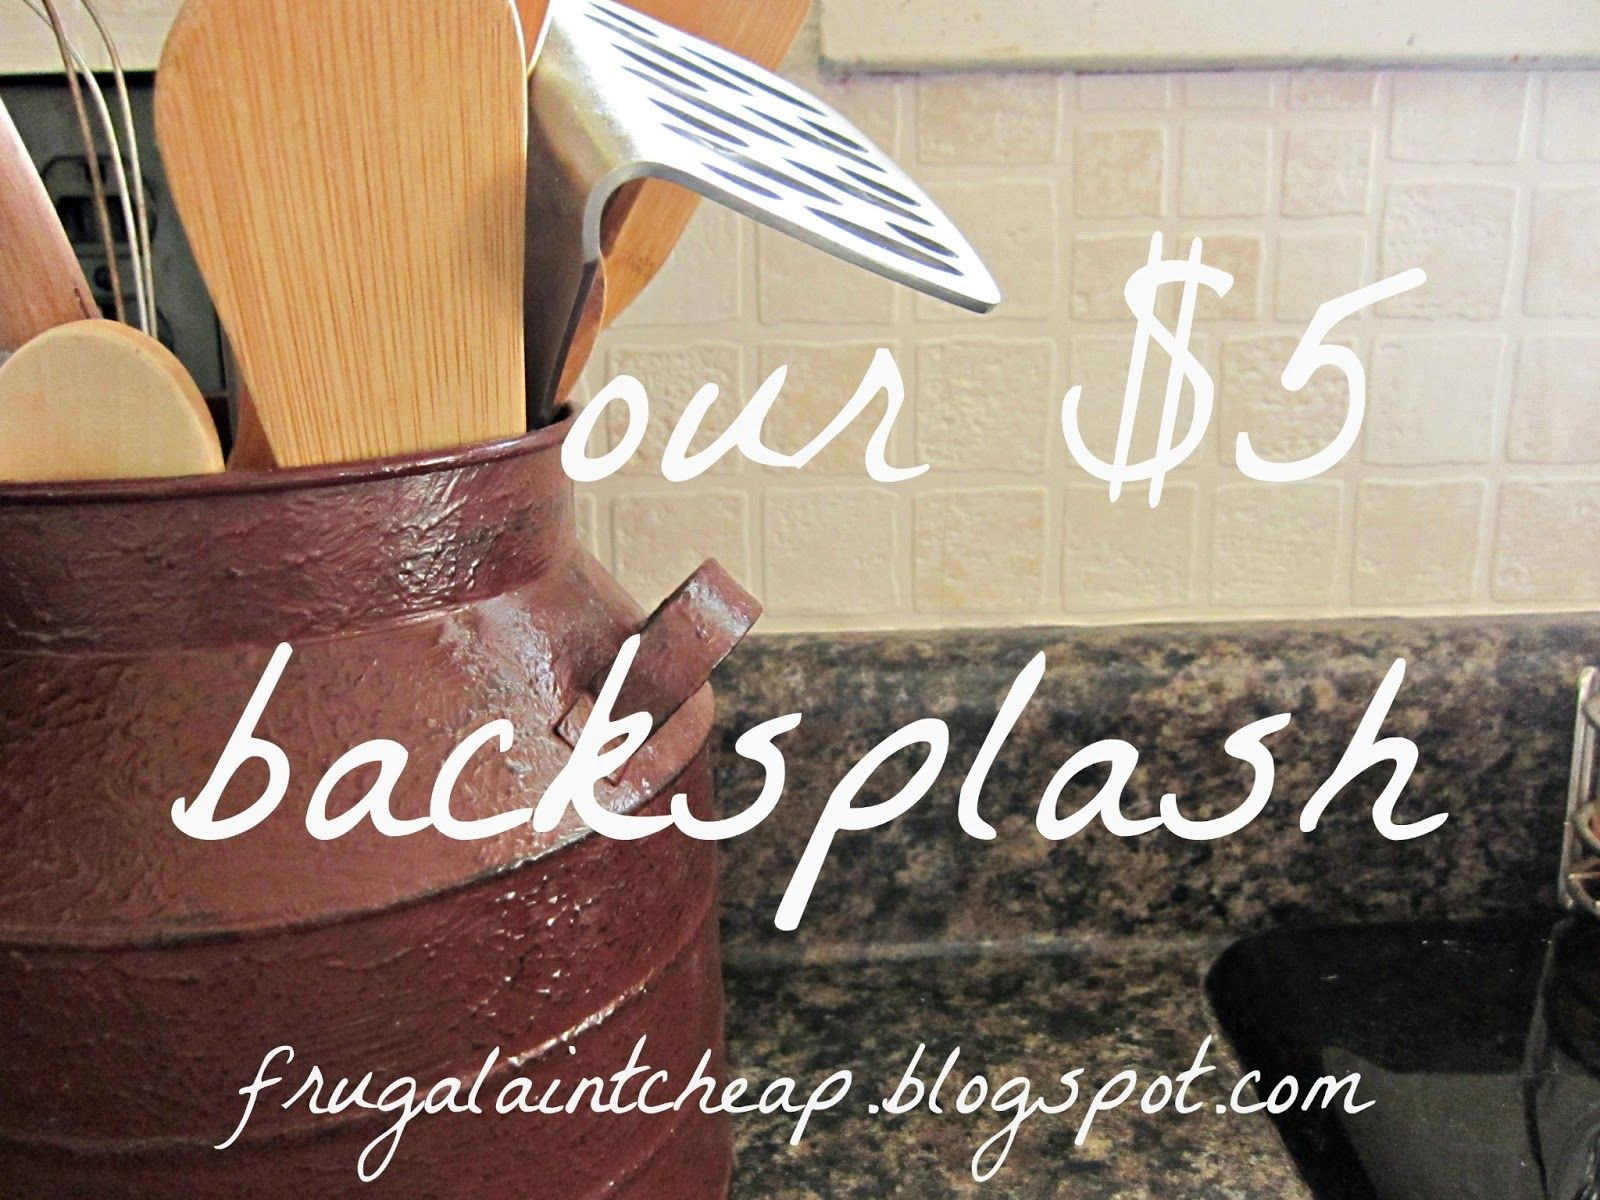 cheap kitchen backsplash ideas. Frugal Aint Cheap: Kitchen Backsplash (great For Renters Too) Cheap Ideas